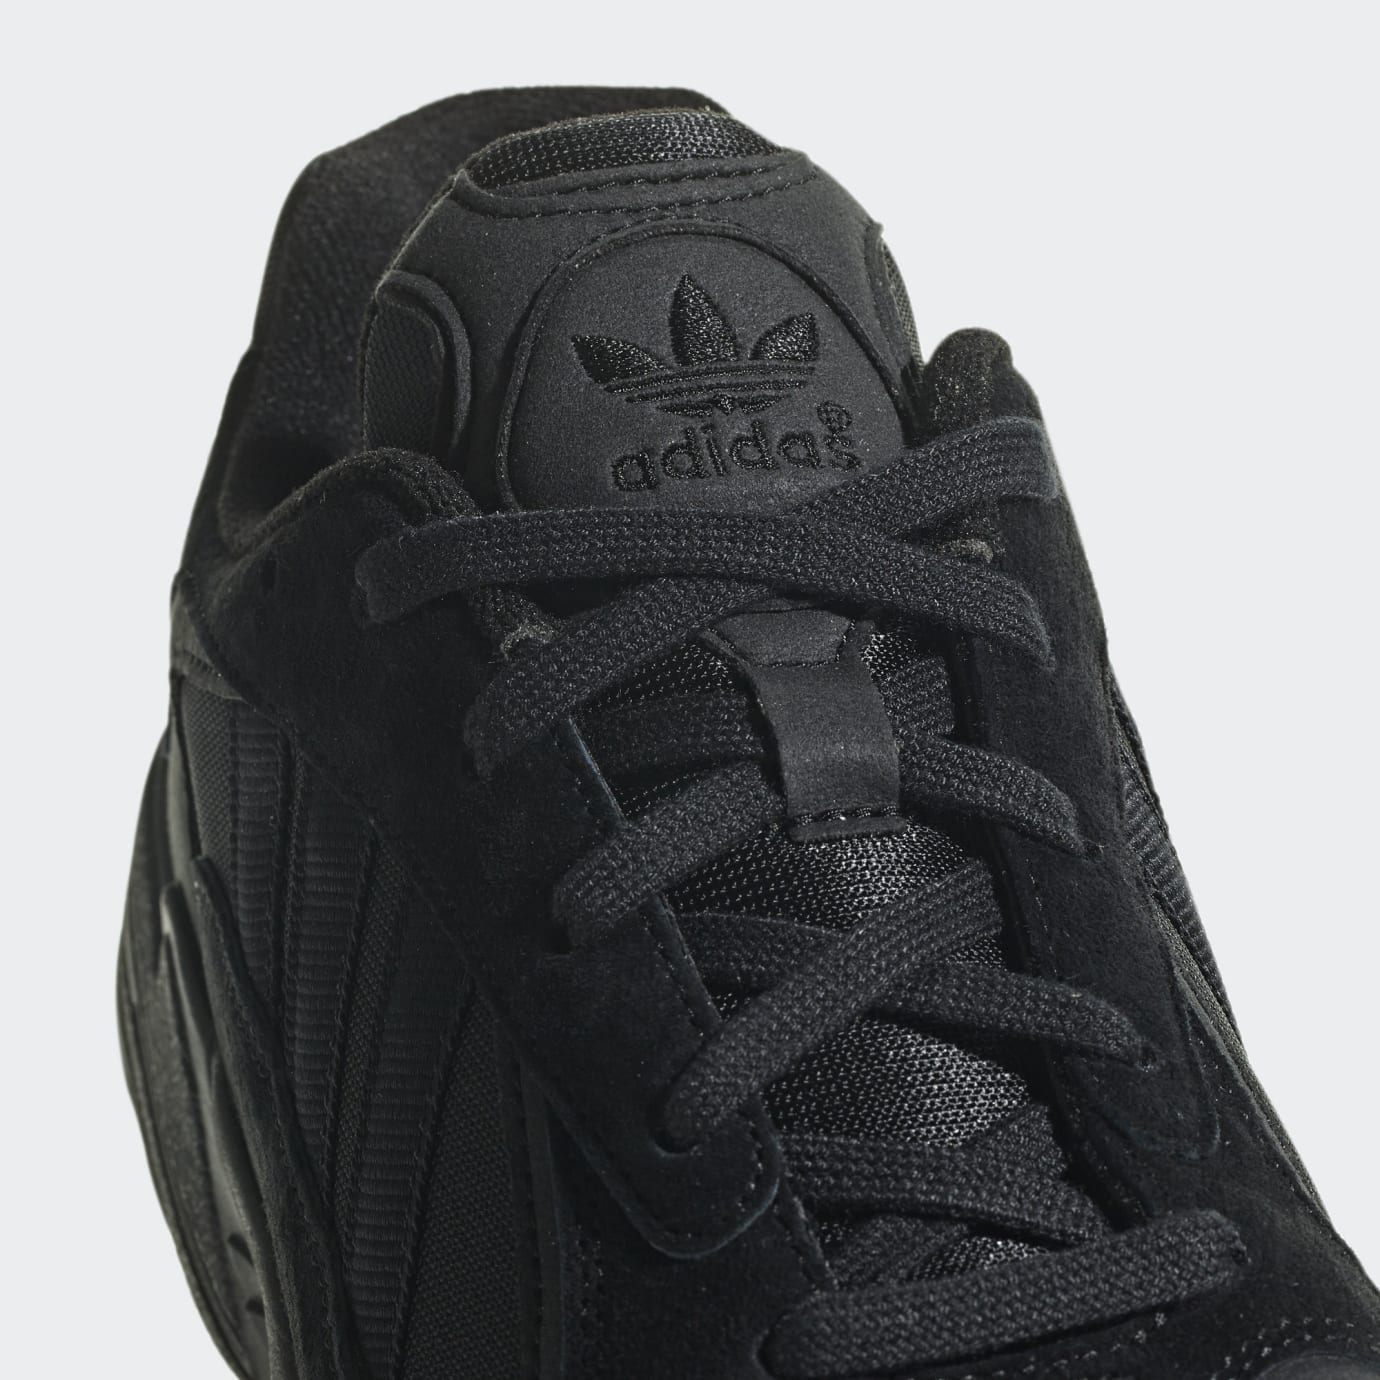 Adidas Yung-1 Triple Black Release Date G27026 Tongue